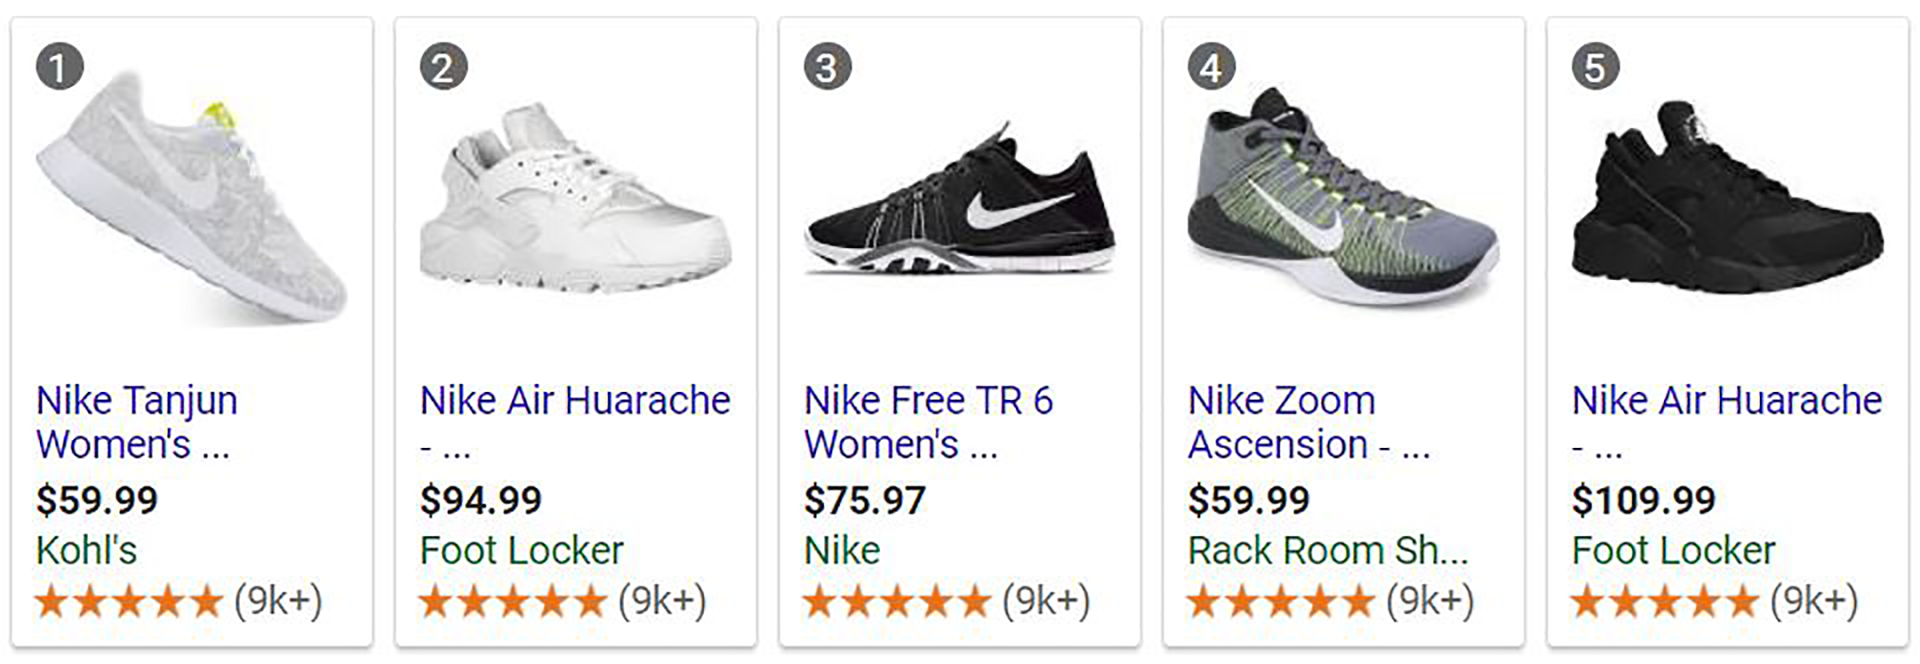 huge discount 31bf5 47770 Nike Google Search Results